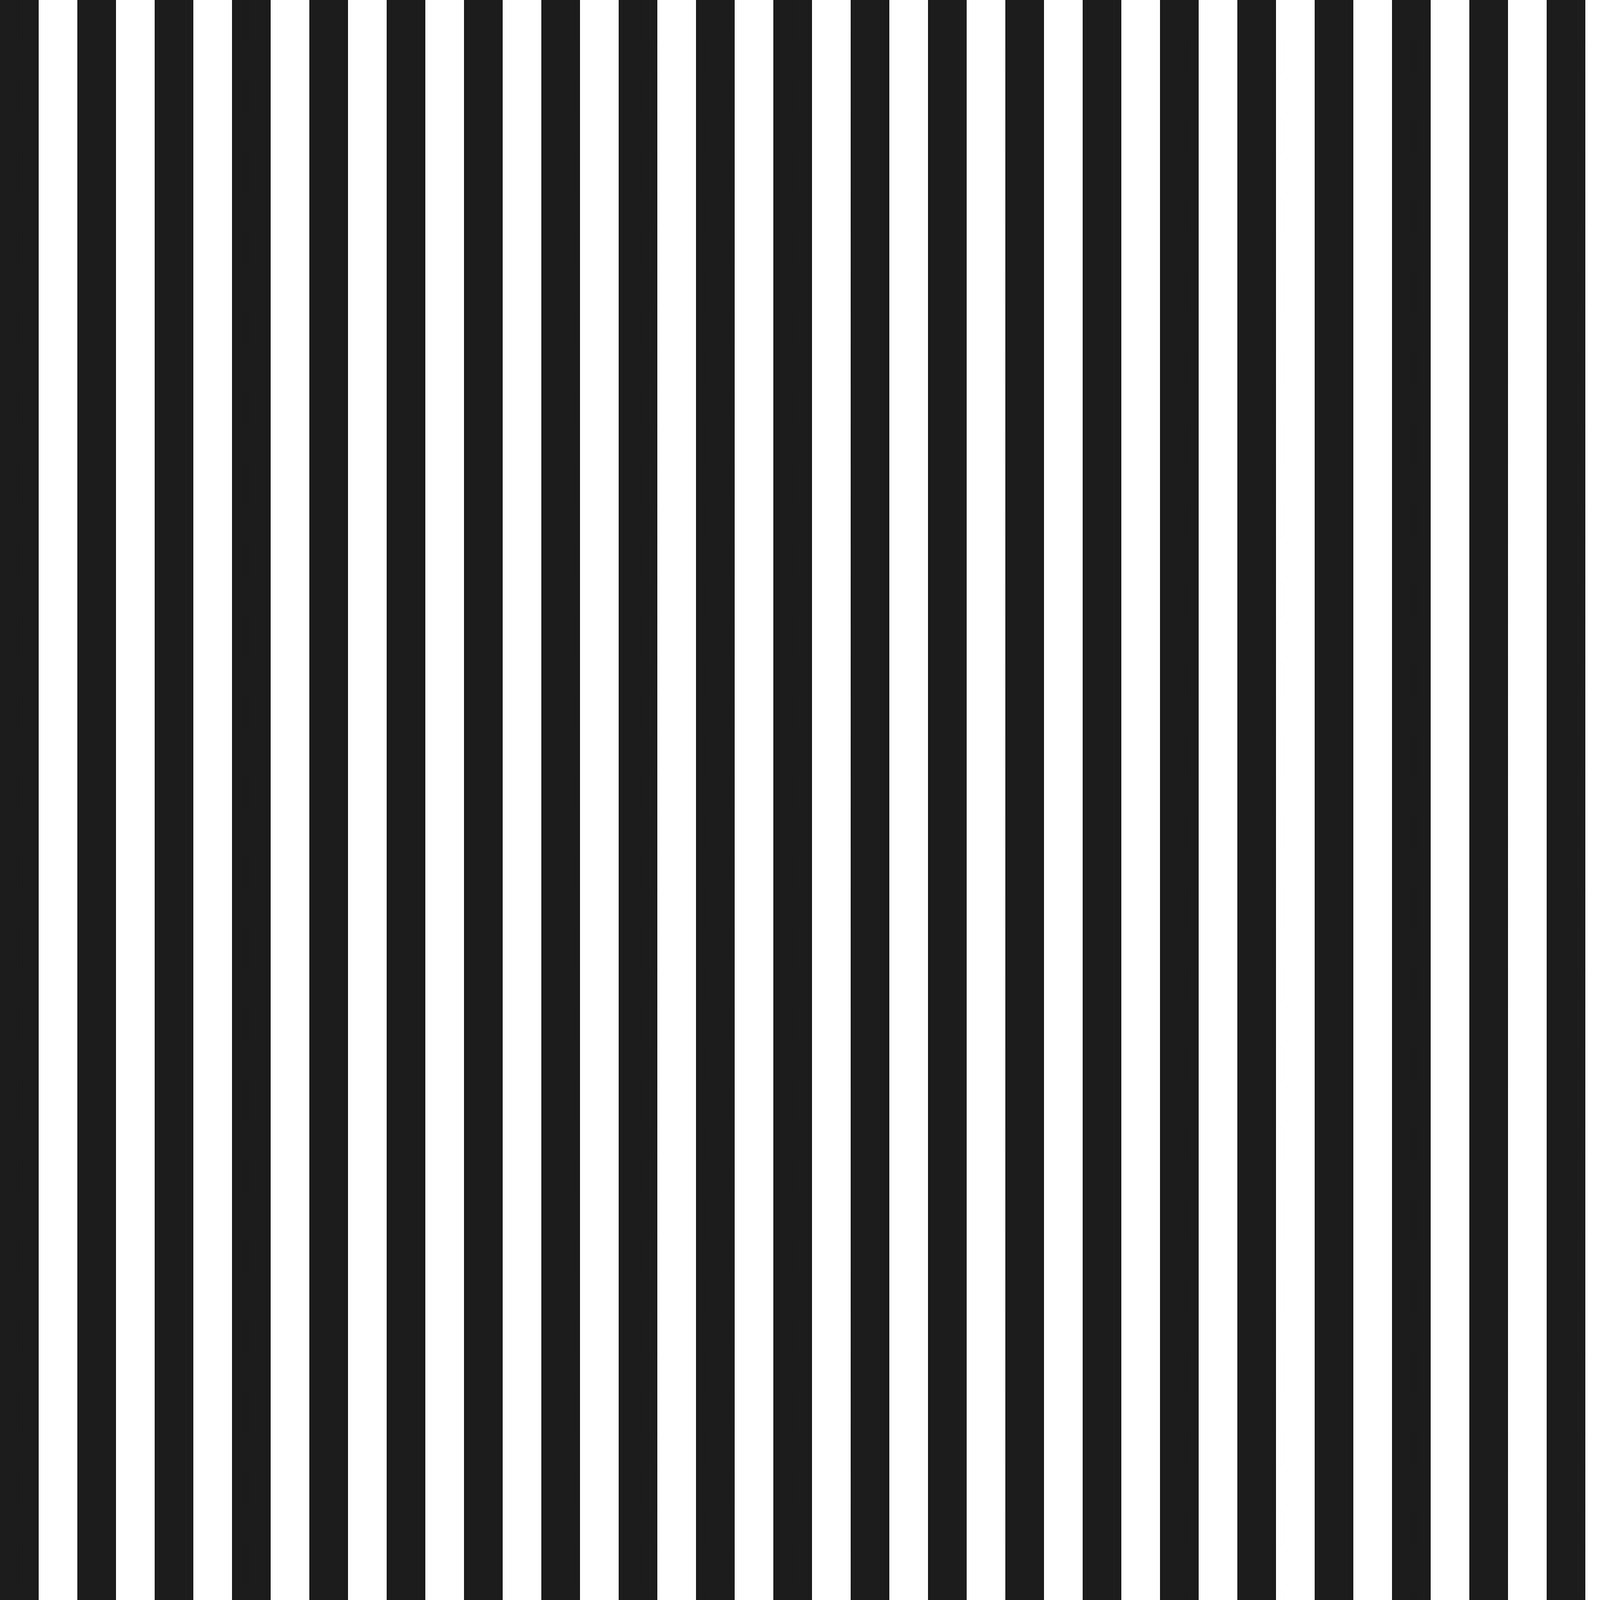 Find great deals on eBay for Black and White Stripe Fabric in Fabric Crafts. Shop with confidence.